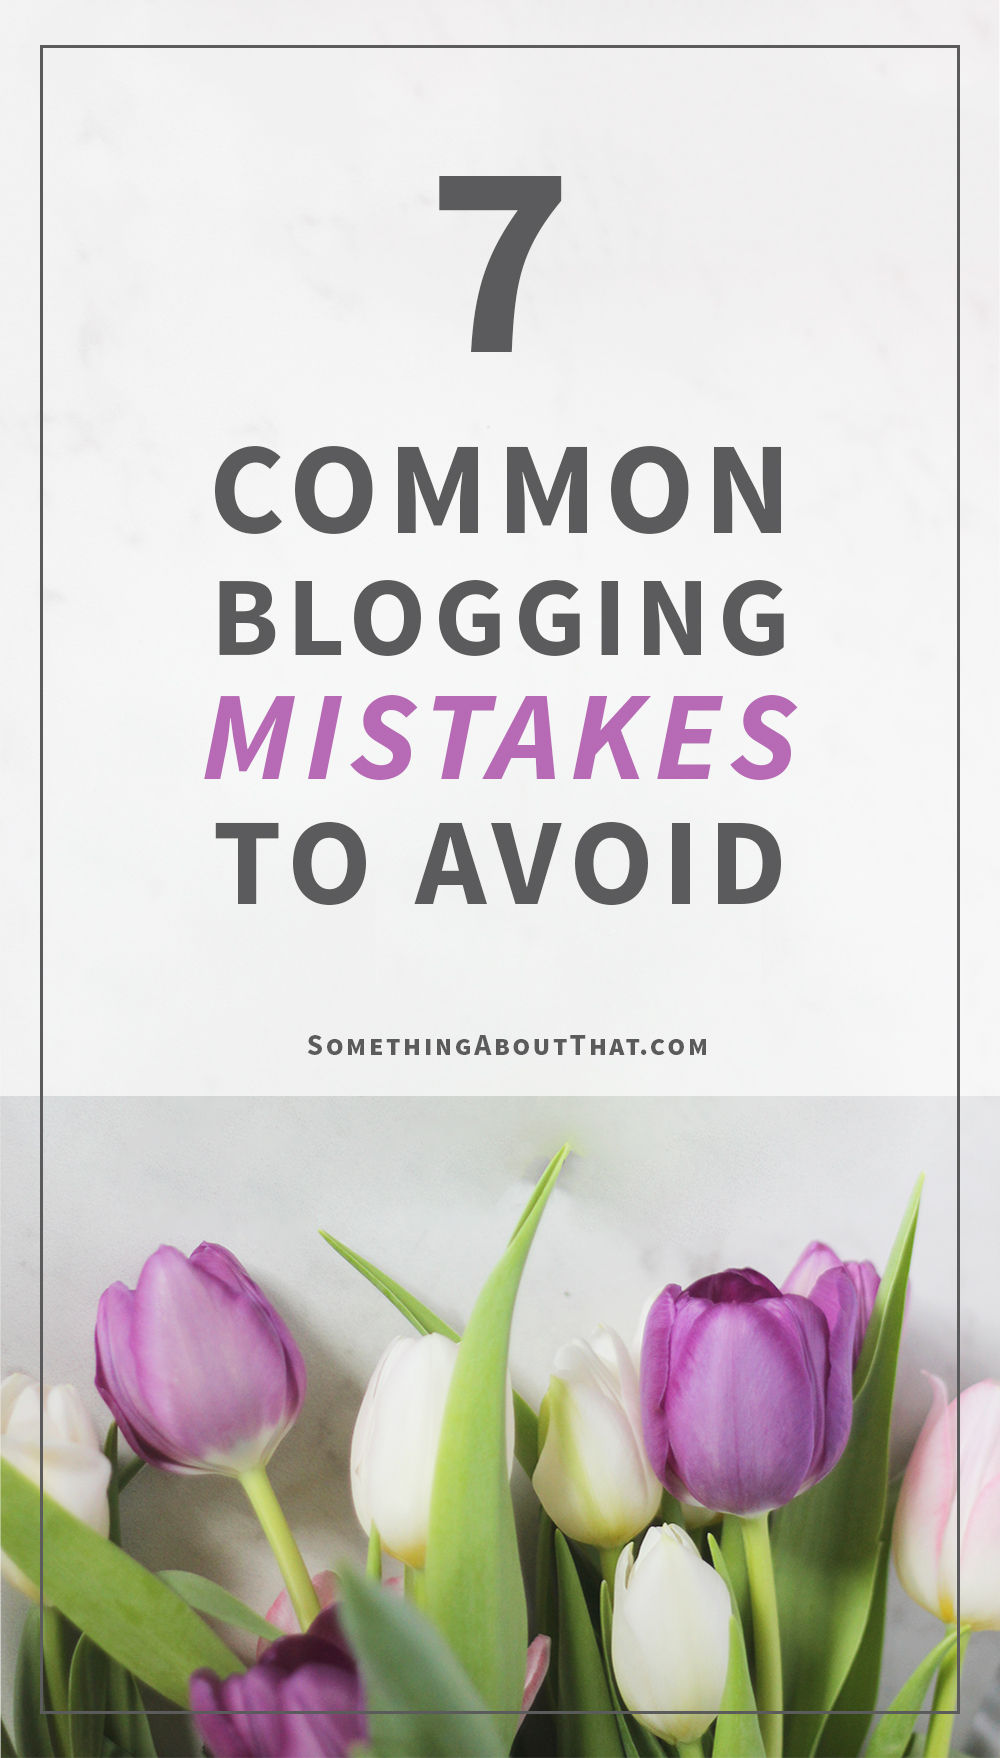 How to improve your blog - 7 common blogging mistakes to avoid